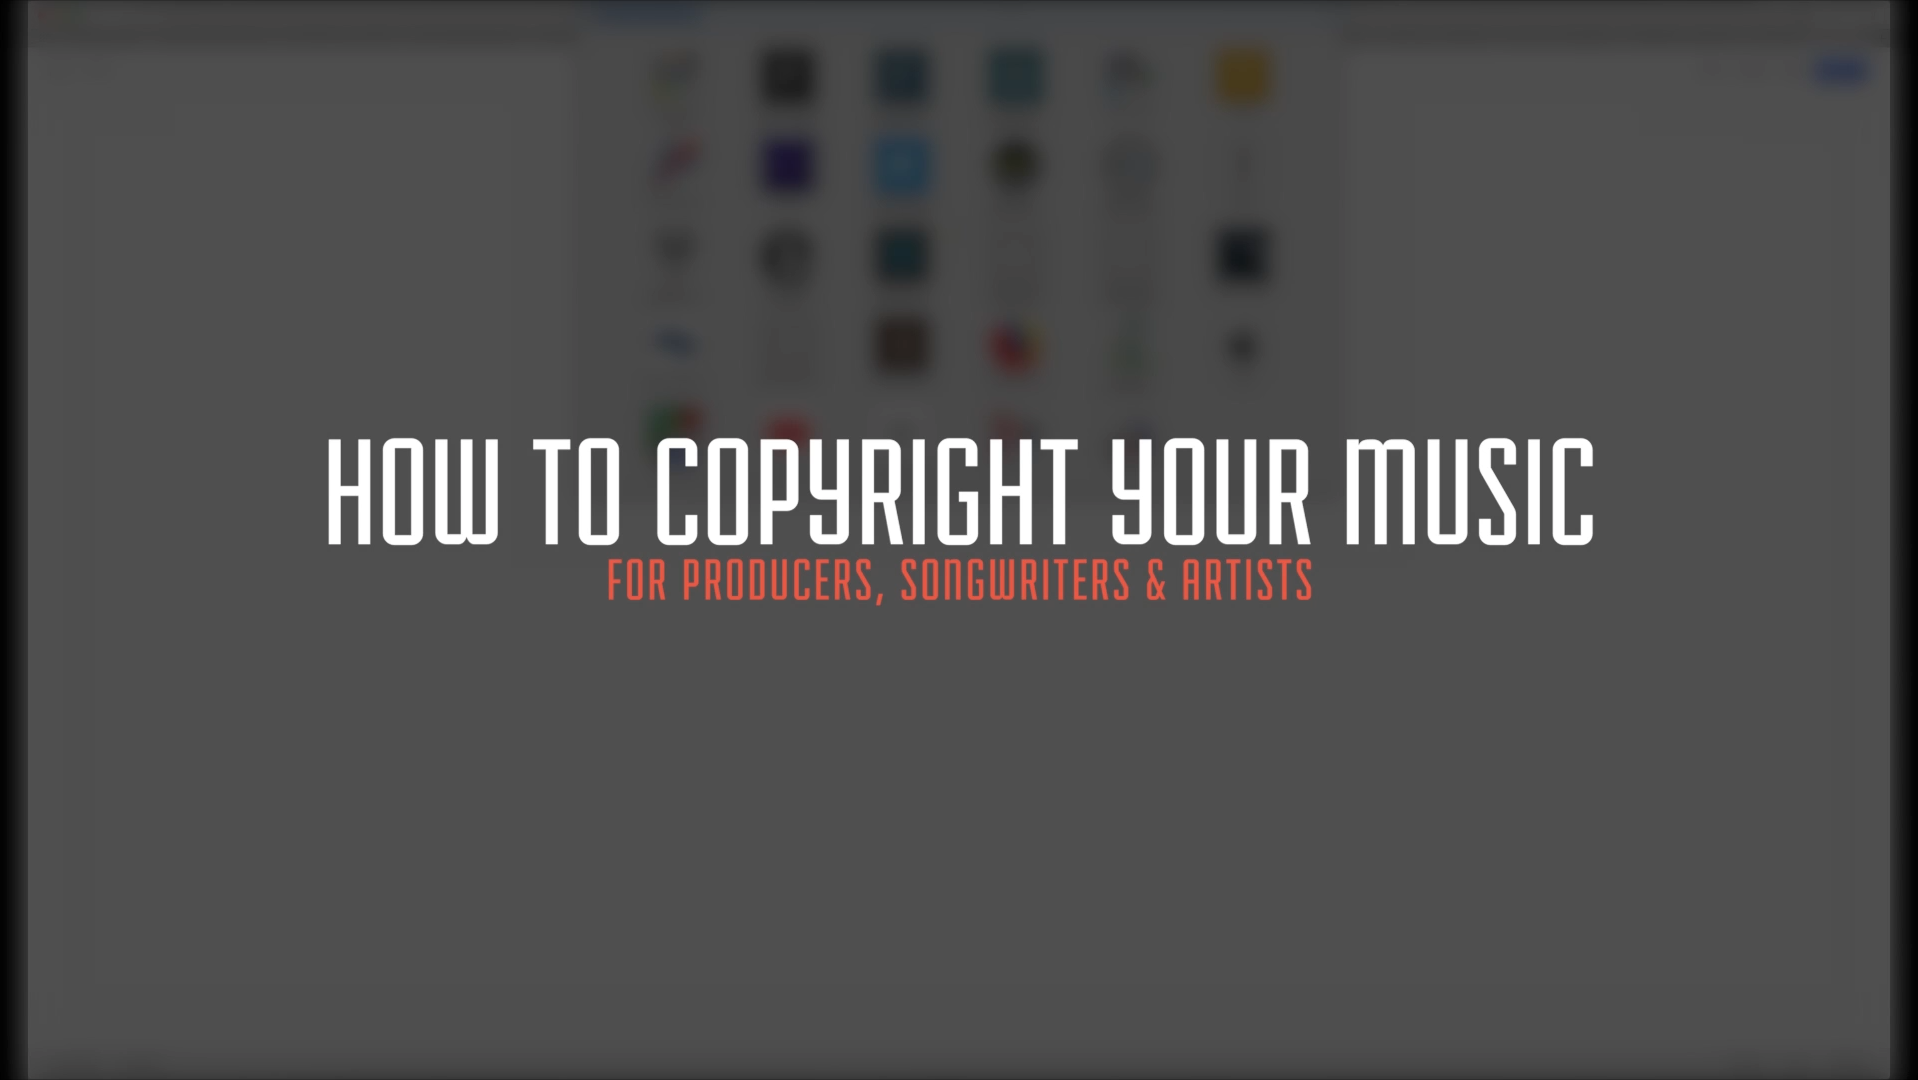 How To Copyright Your Music: For Producers, Songwriters & Artists